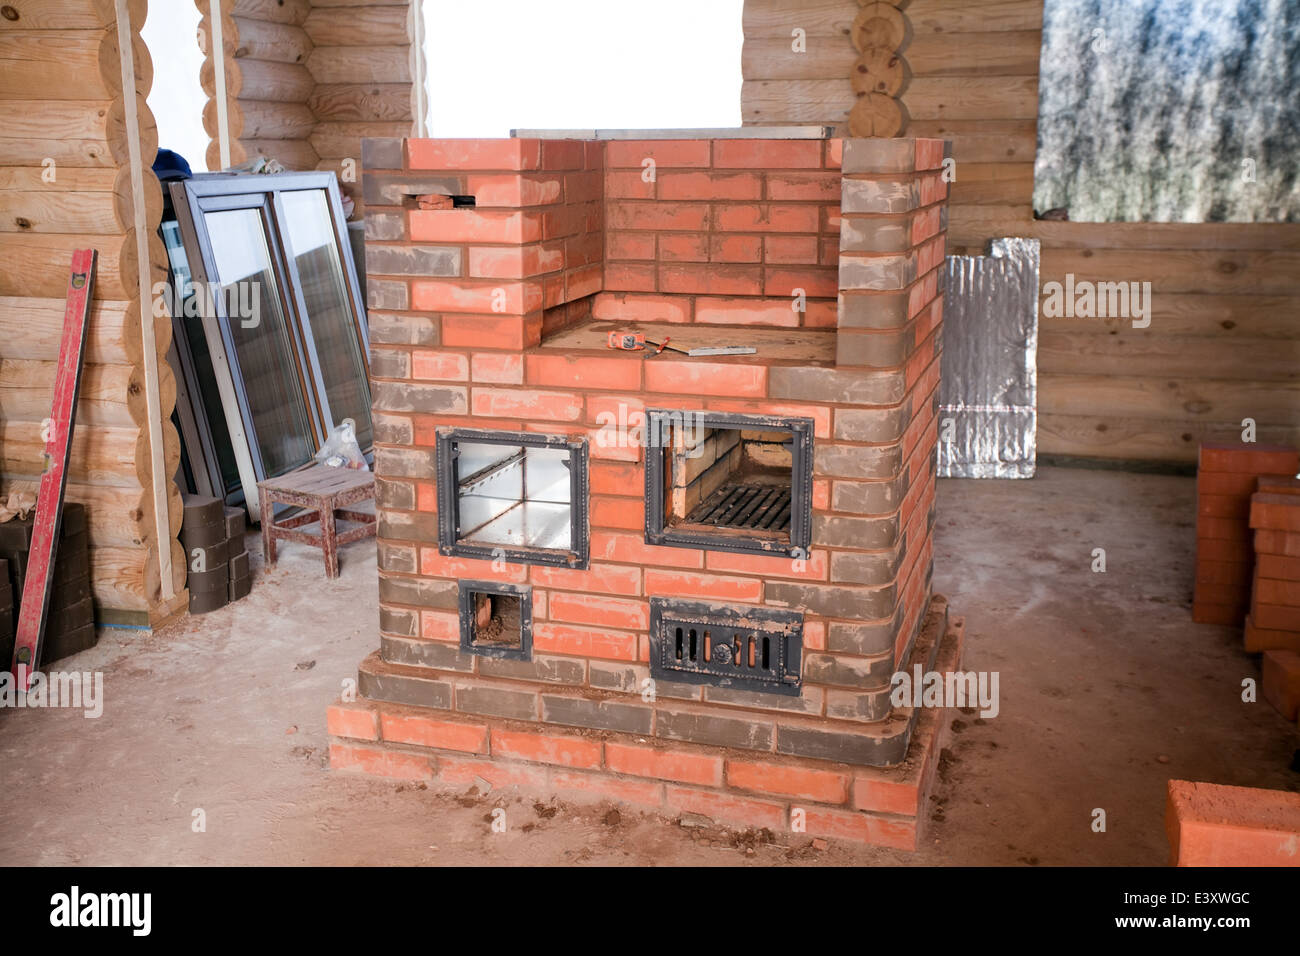 Brick stove for a bath with his own hands. A simple brick stove for a bath 41